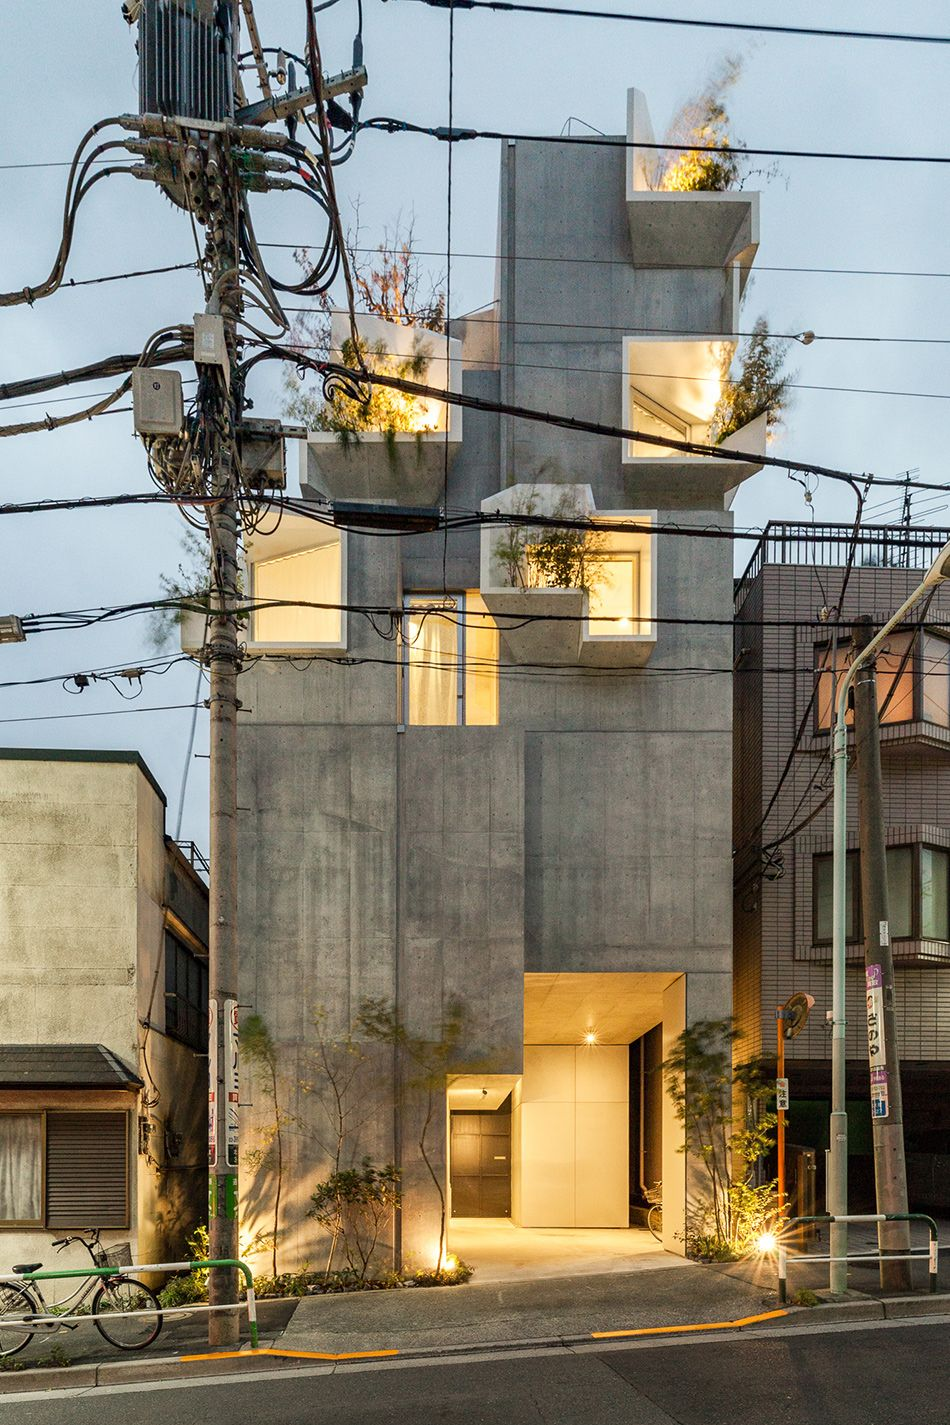 akihisa hirata completes 'treeness house' in tokyo is part of architecture House Nature Glasses - architecture House Nature Glasses